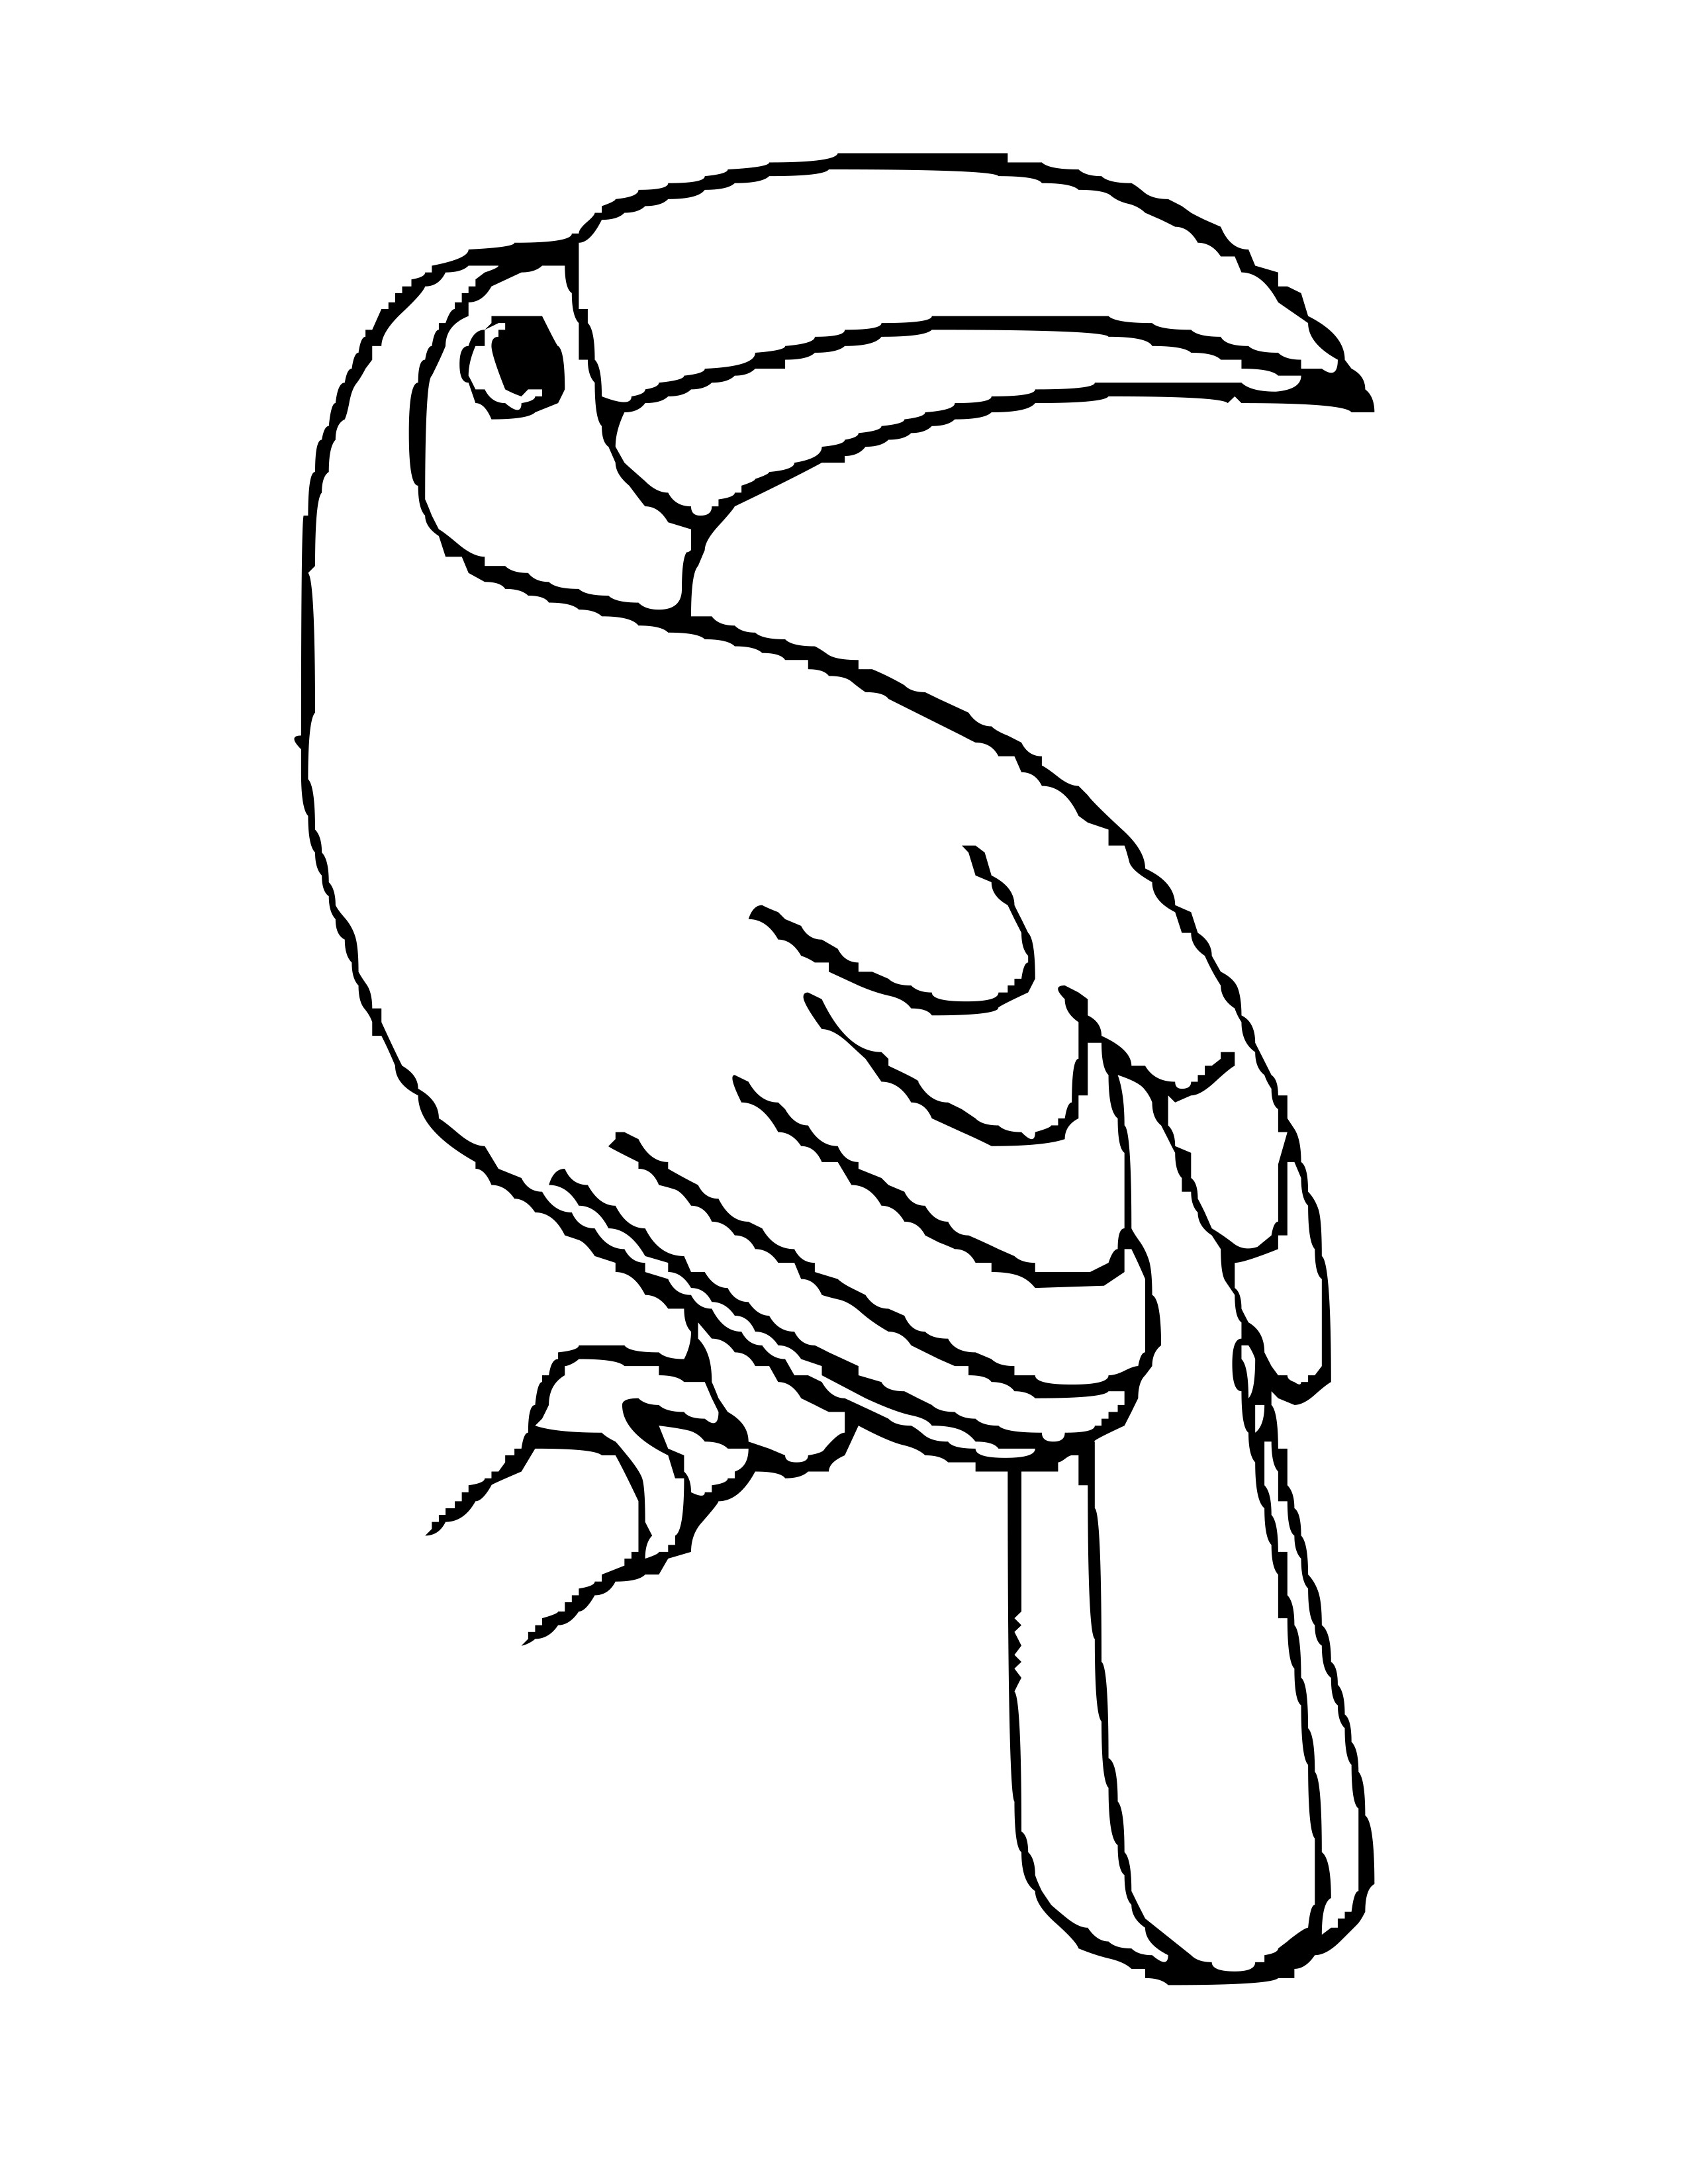 Toucan clipart black and white free Toucan Clipart Black And White | Free download best Toucan ... free